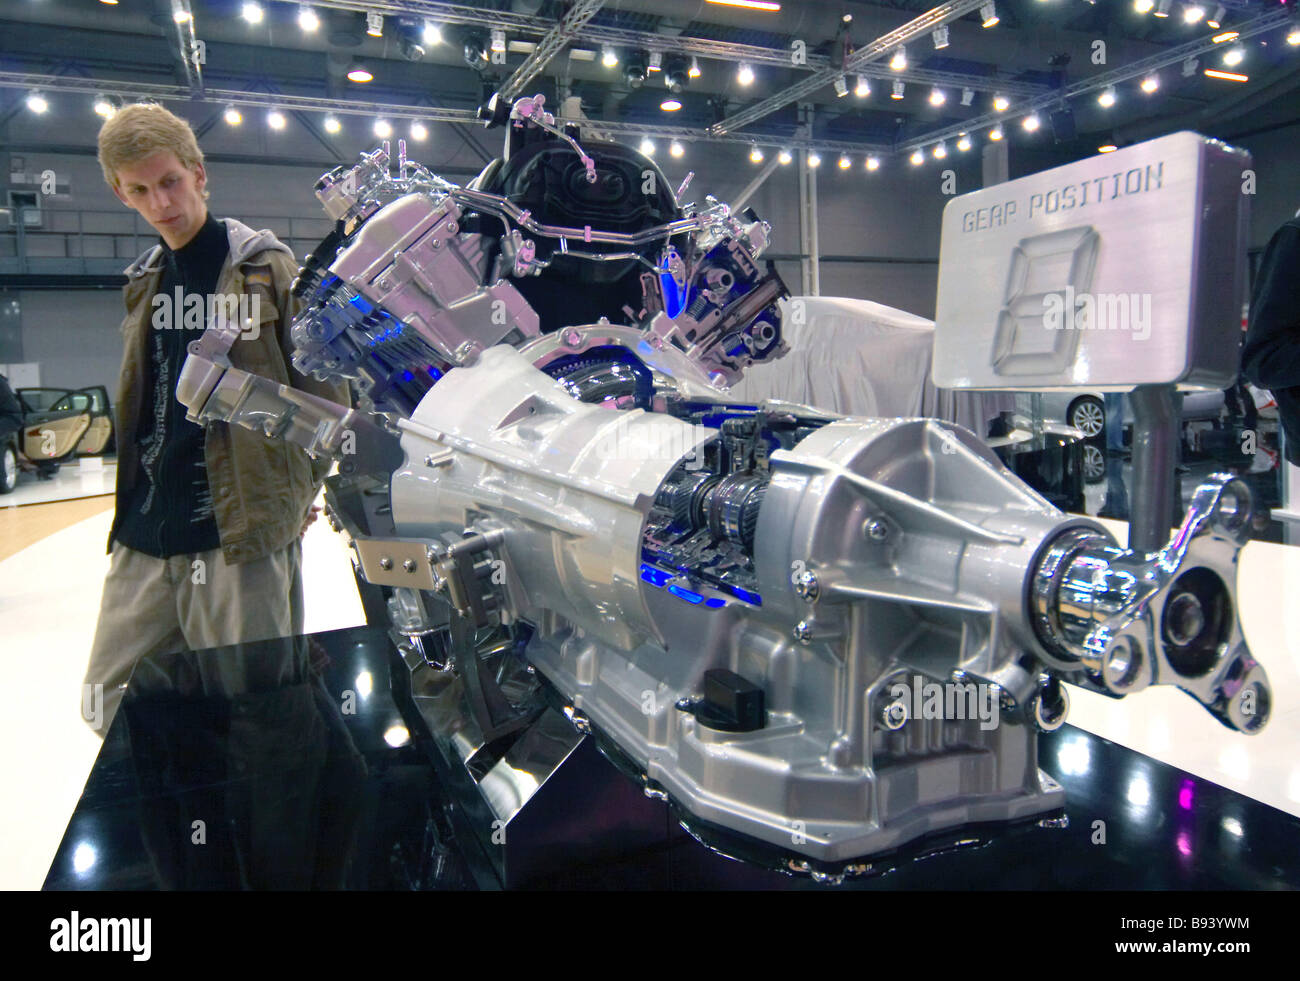 A model of a hybrid engine shown by Lexus at the 15th international exhibition of cars service stations equipment - Stock Image